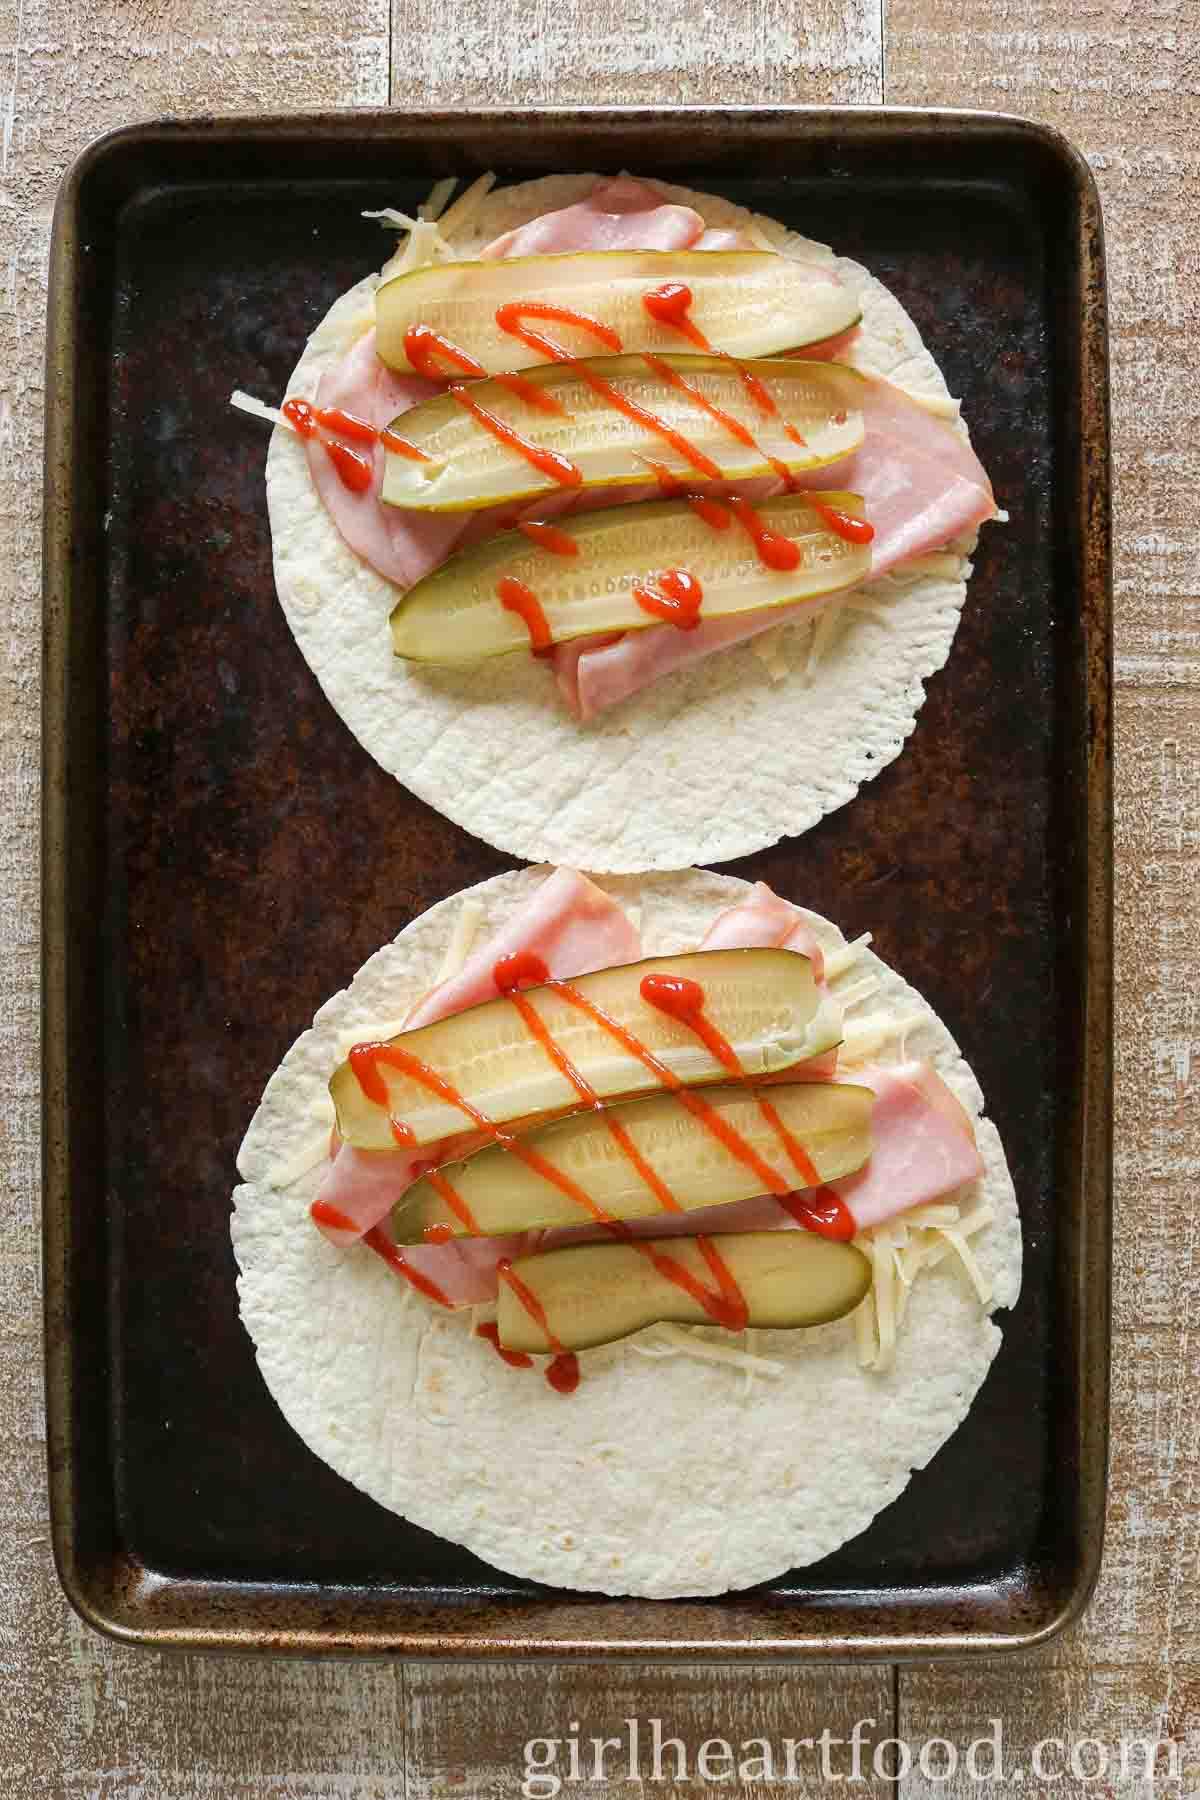 Two tortillas with ham, pickle, cheese and hot sauce on a sheet pan.